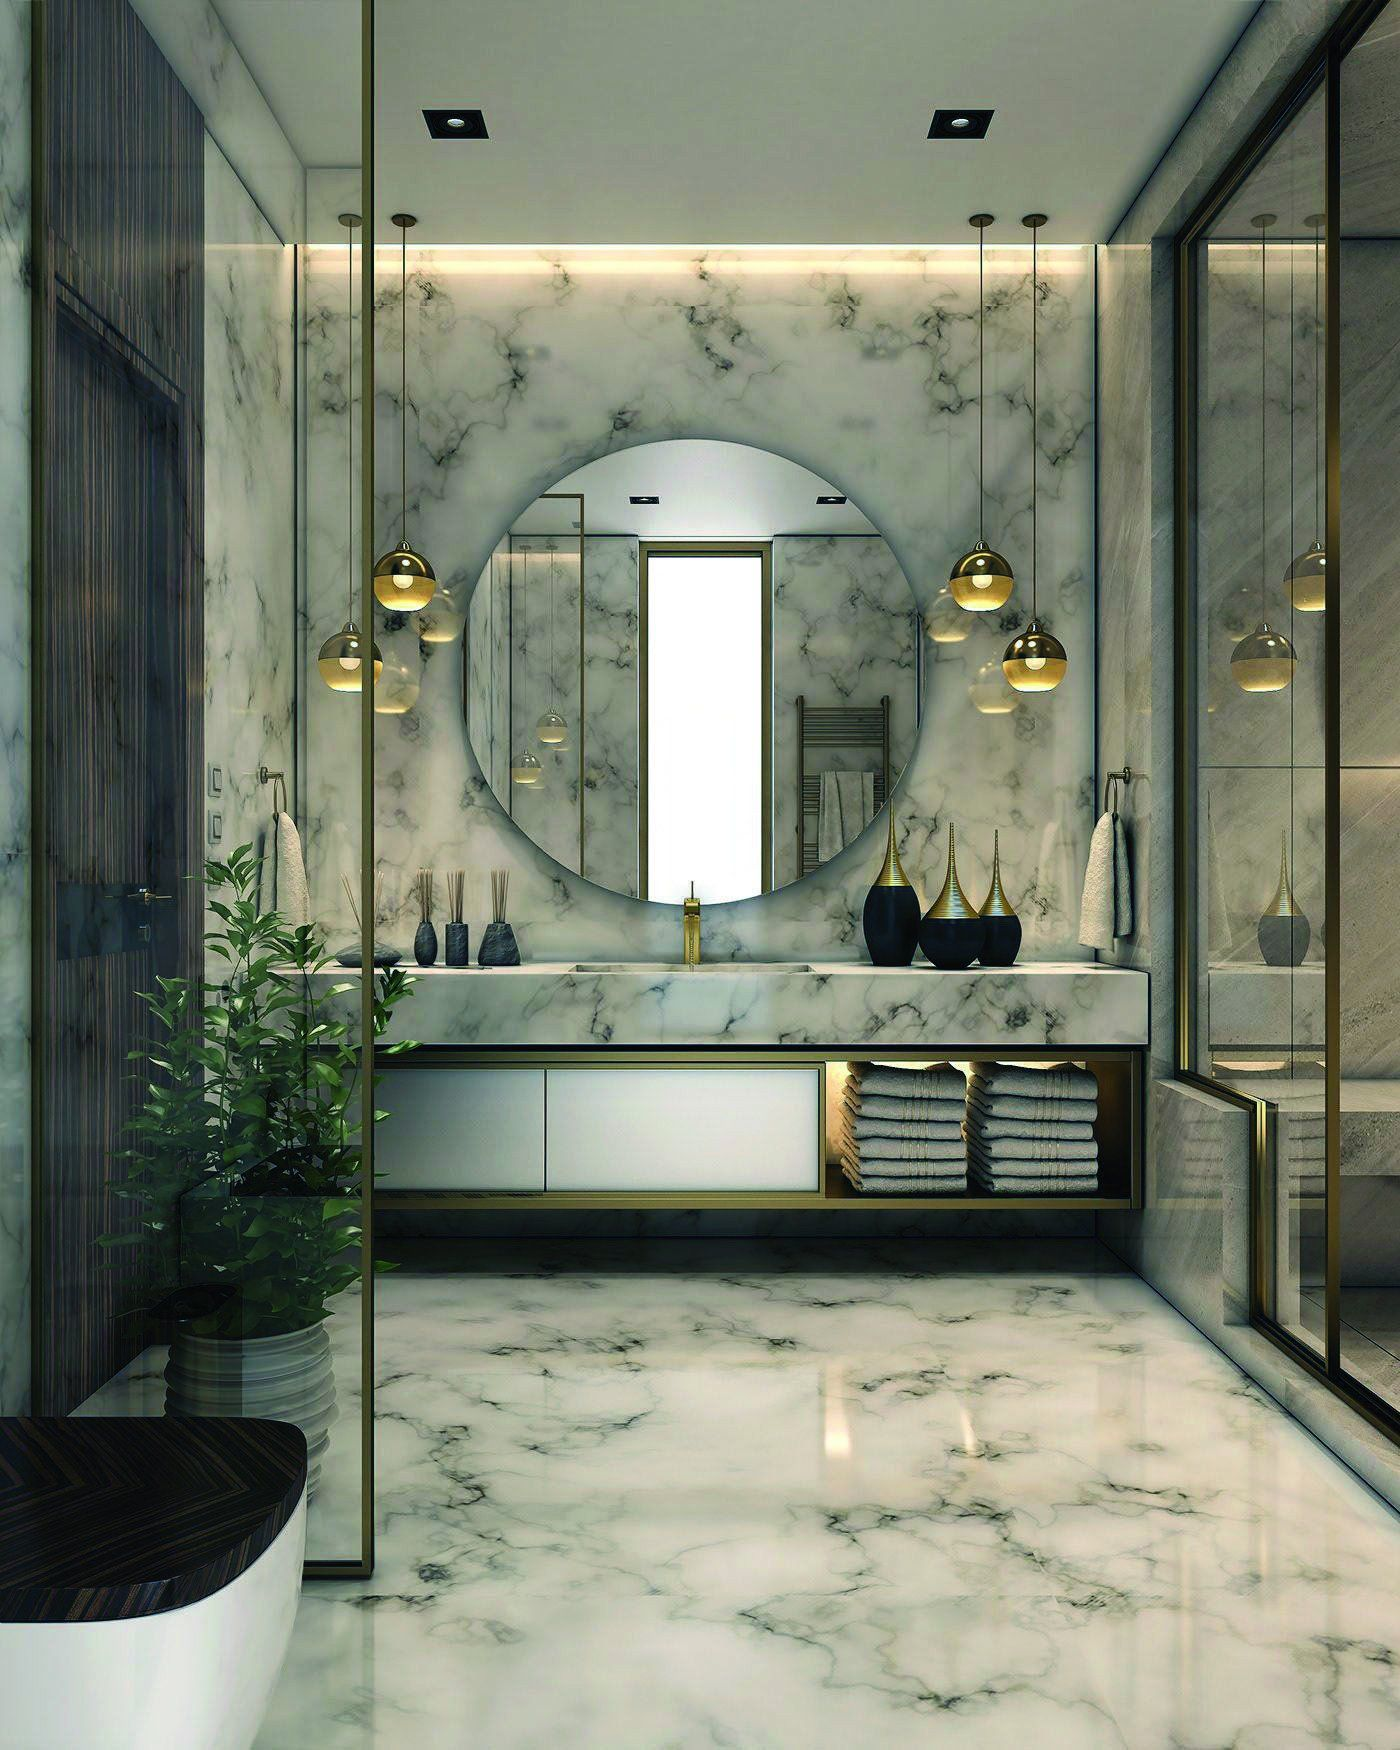 Master Bathroom Decorating Idea Pinterest Perfect Small Bathroom Vanity Ideas Pinterest Ly In Bathroom Design Luxury Best Bathroom Designs Bathroom Design